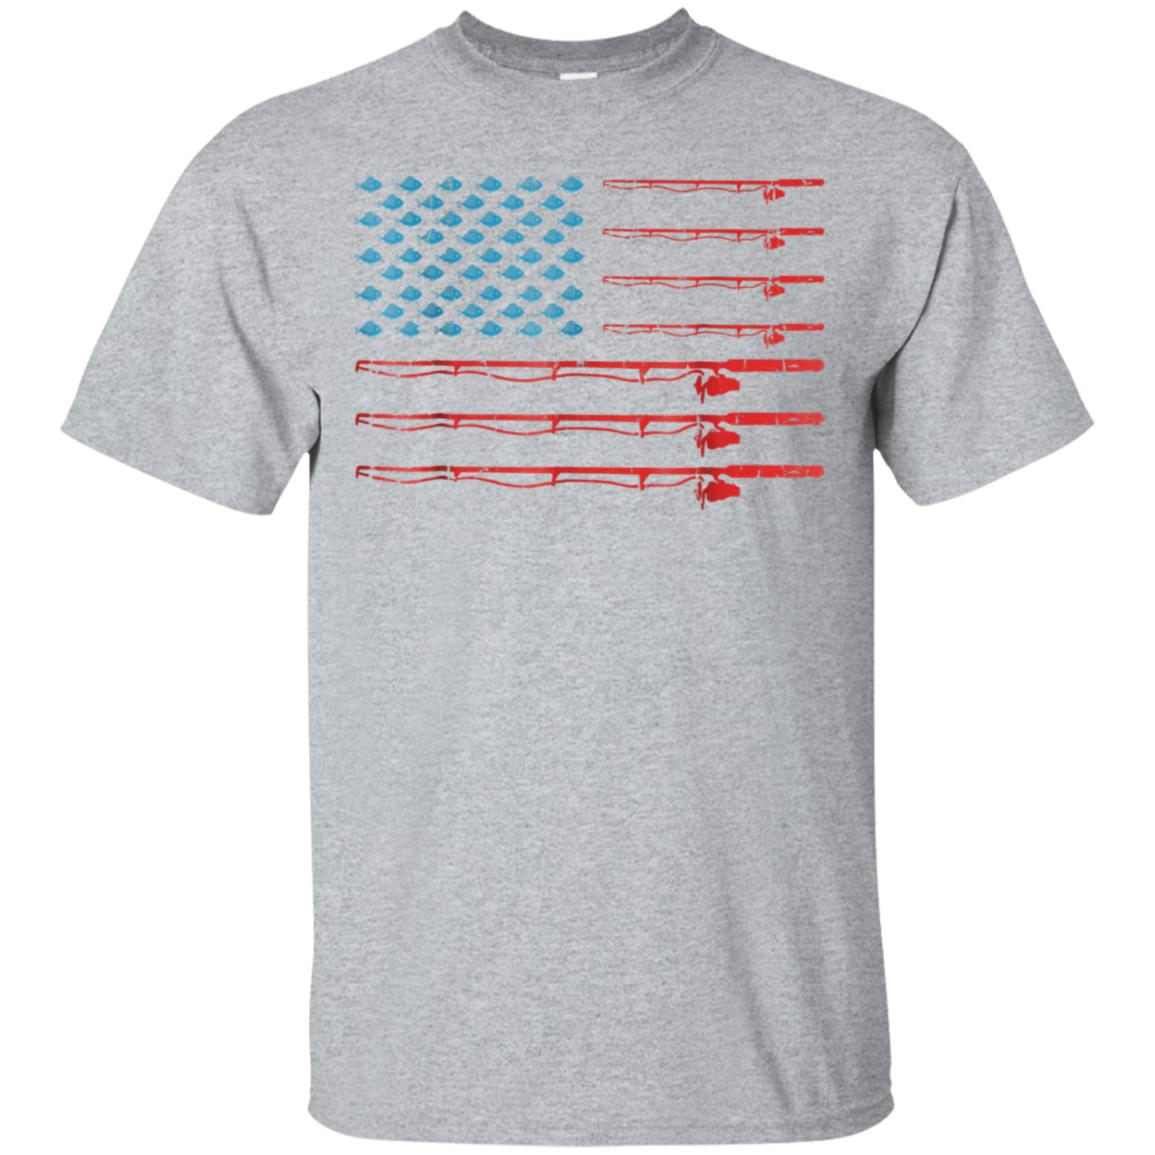 Fishing American Flag T-shirt Gifs For Who Loves Fishing 99promocode